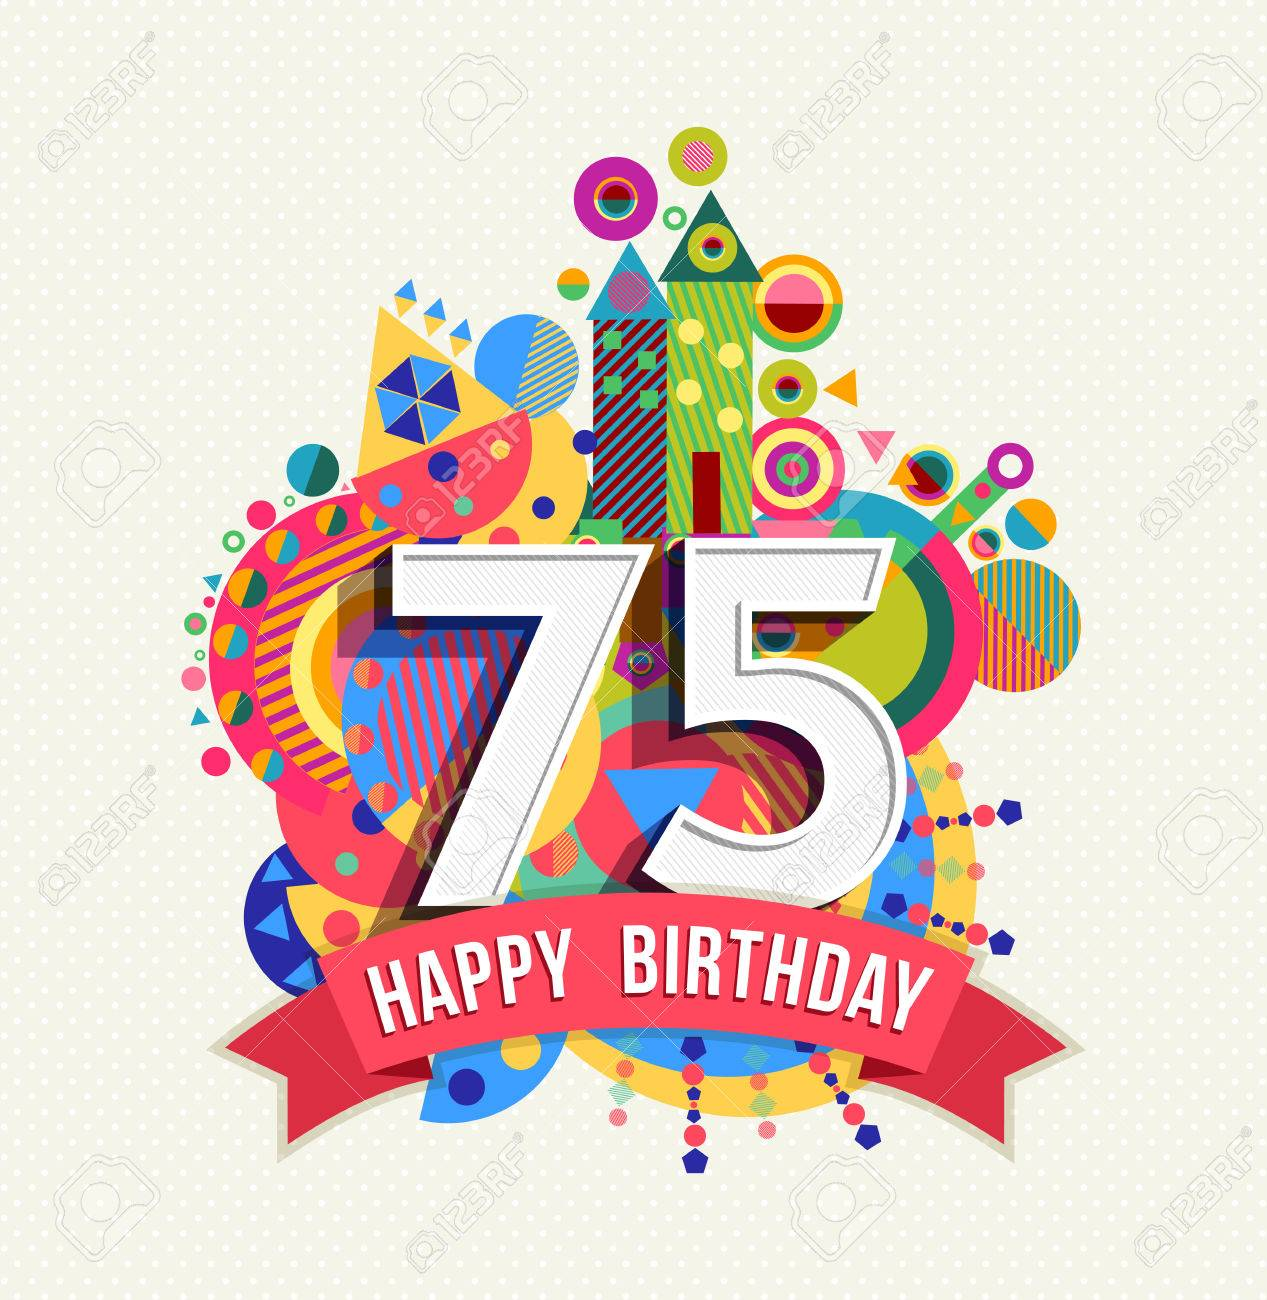 happy 75th birthday clipart ; 51067476-happy-birthday-seventy-five-75-year-fun-celebration-greeting-card-with-number-text-label-and-colorfu